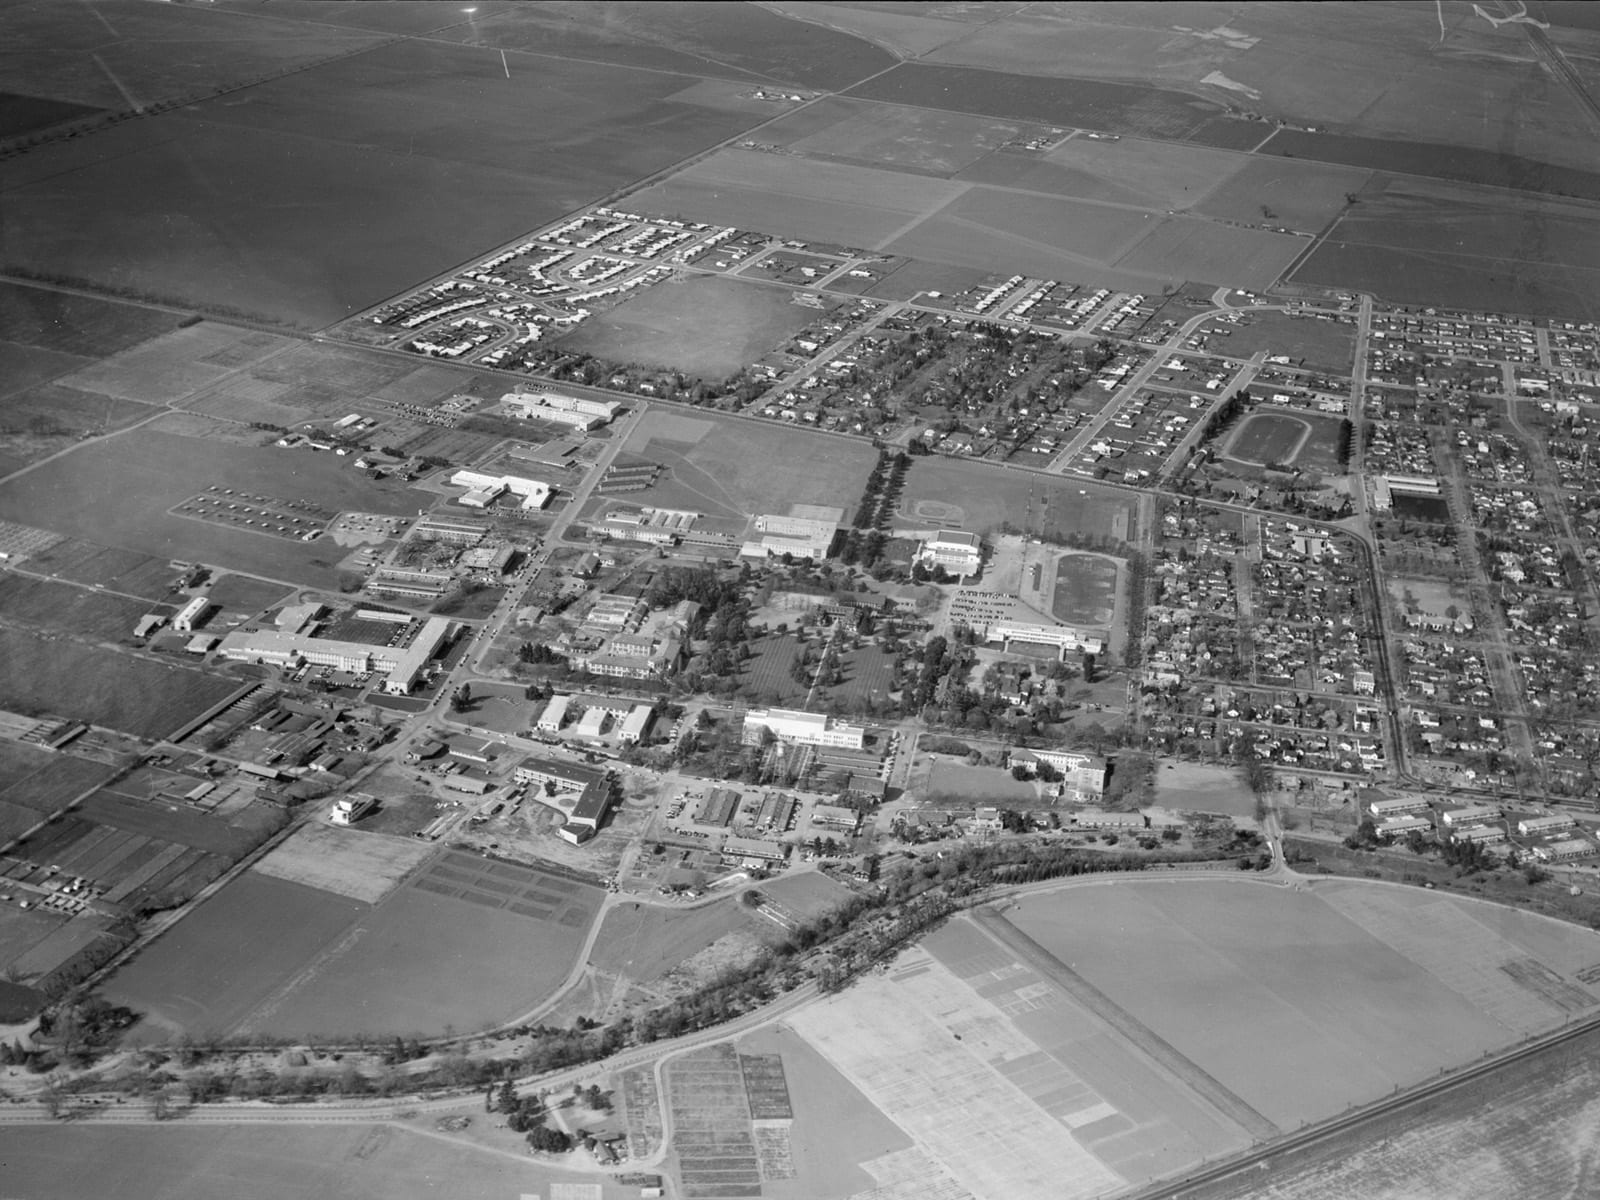 Aerial view of Davis, looking north, 1953